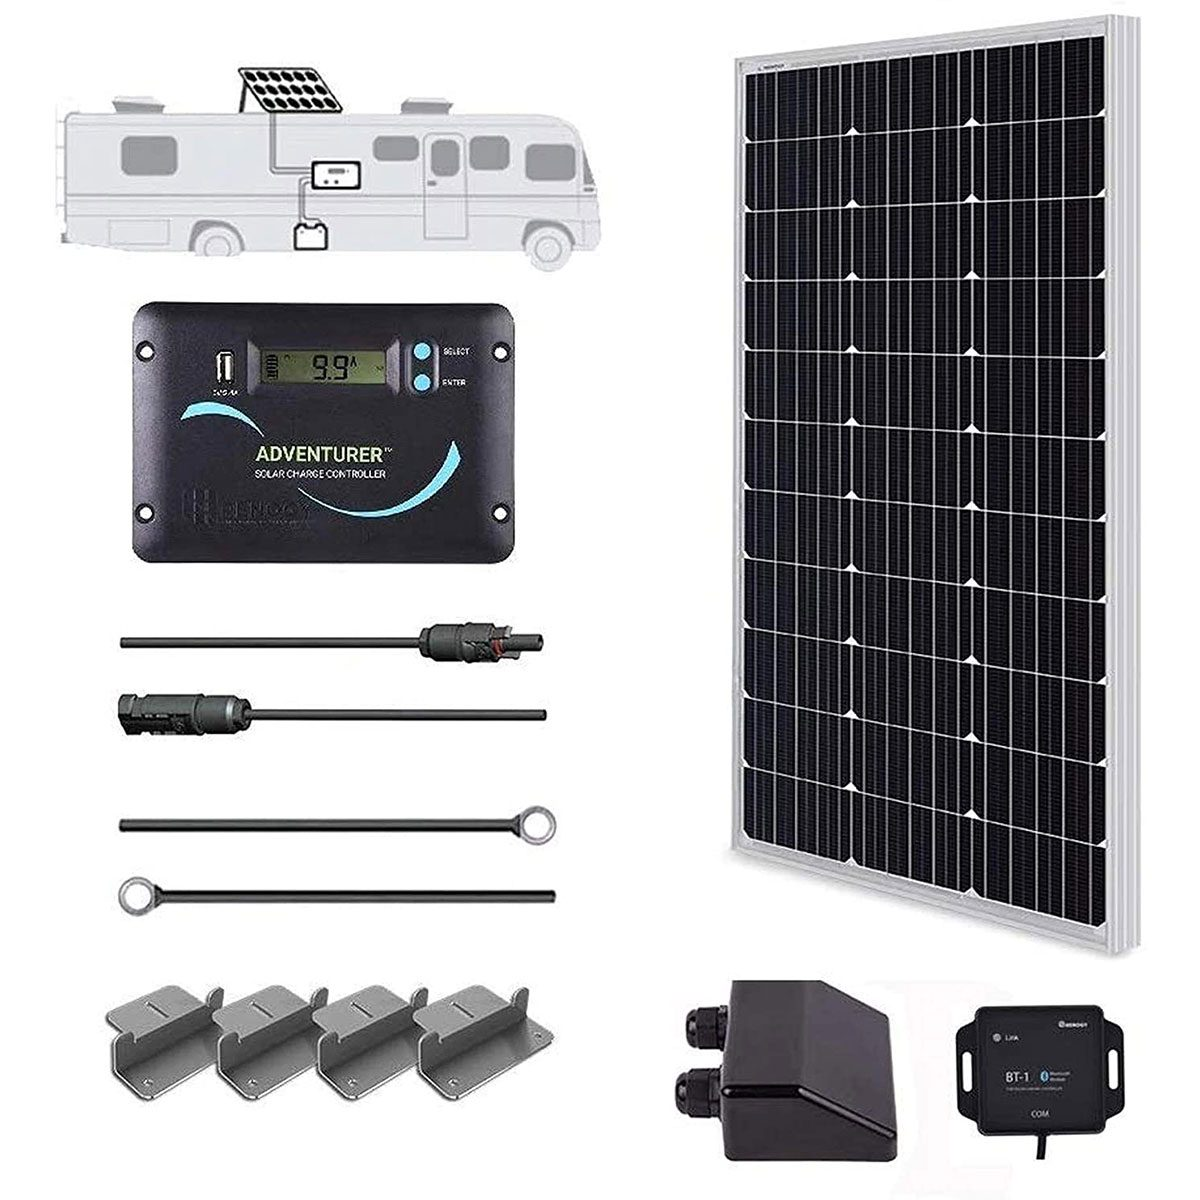 Photo of the Renogy solar kit